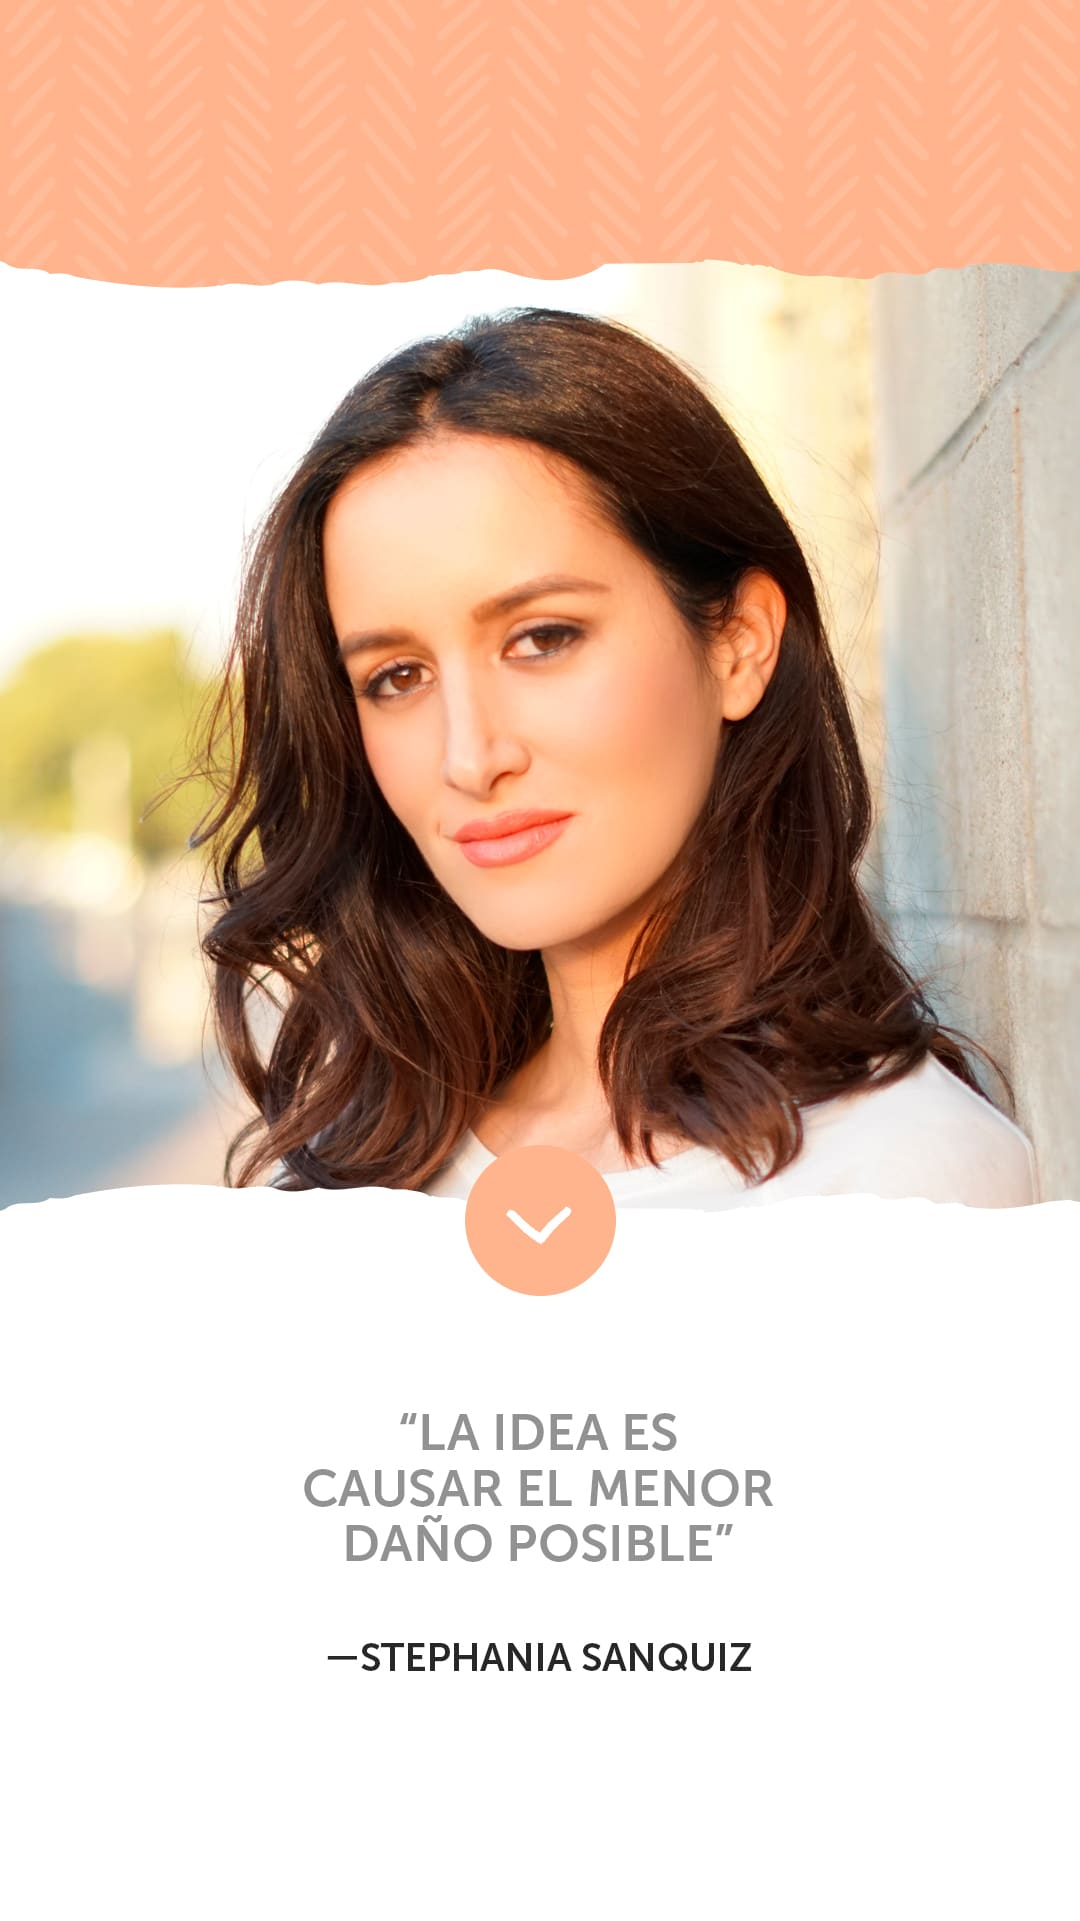 """La idea es causar el menor daño posible"" —Stephania Sanquiz"